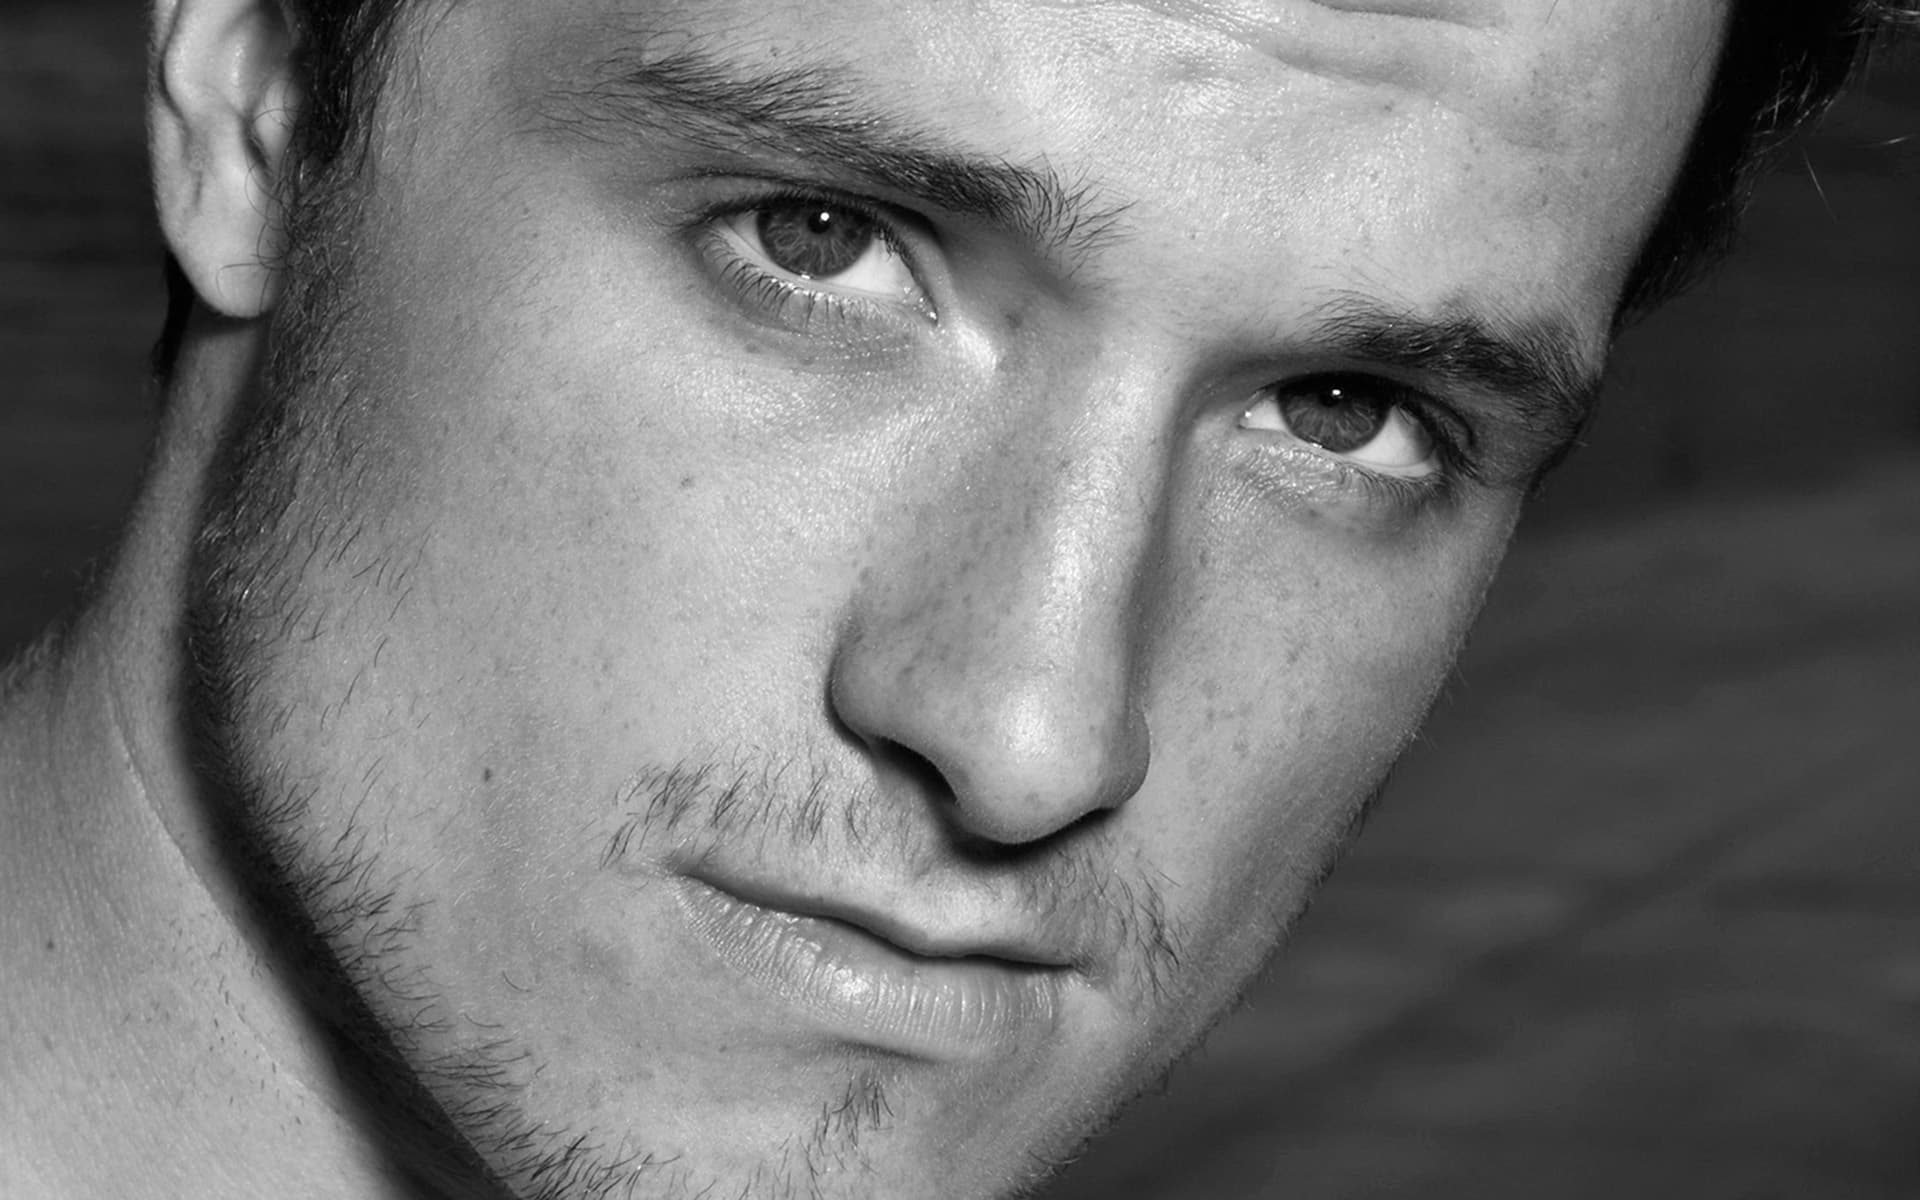 josh hutcherson face wallpaper 65753